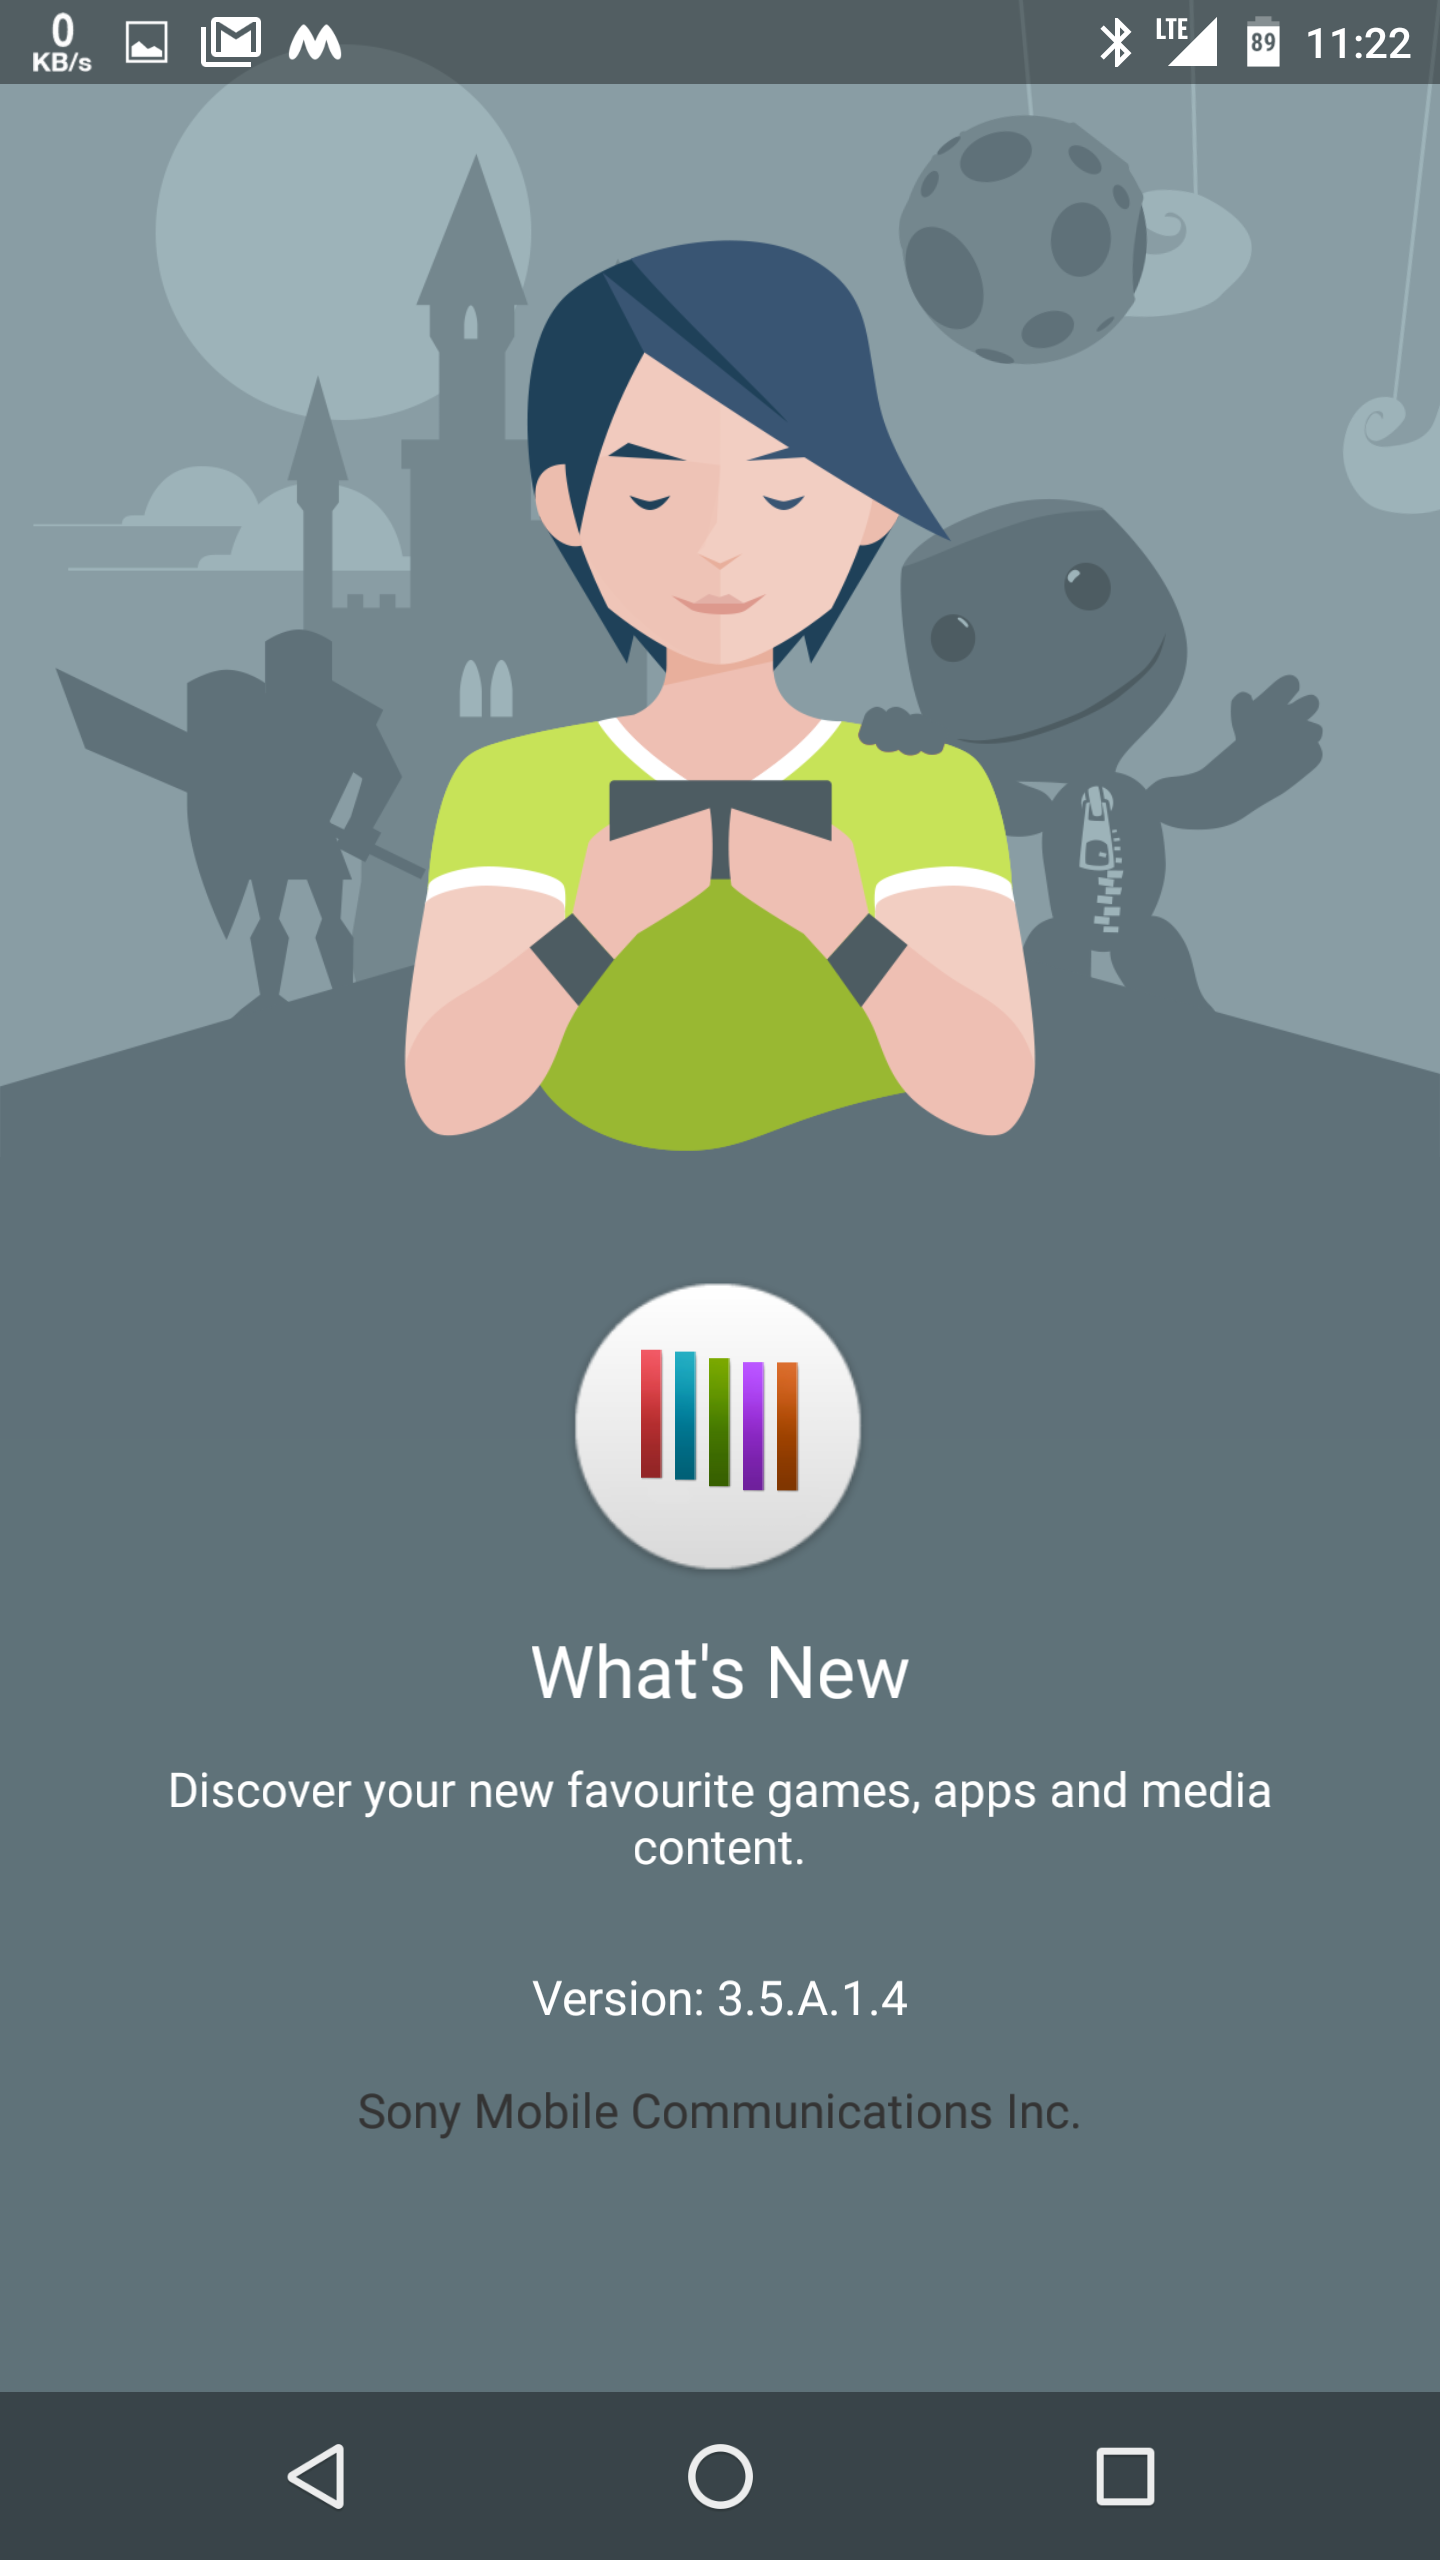 What's New app 3.5.A.1.4 update